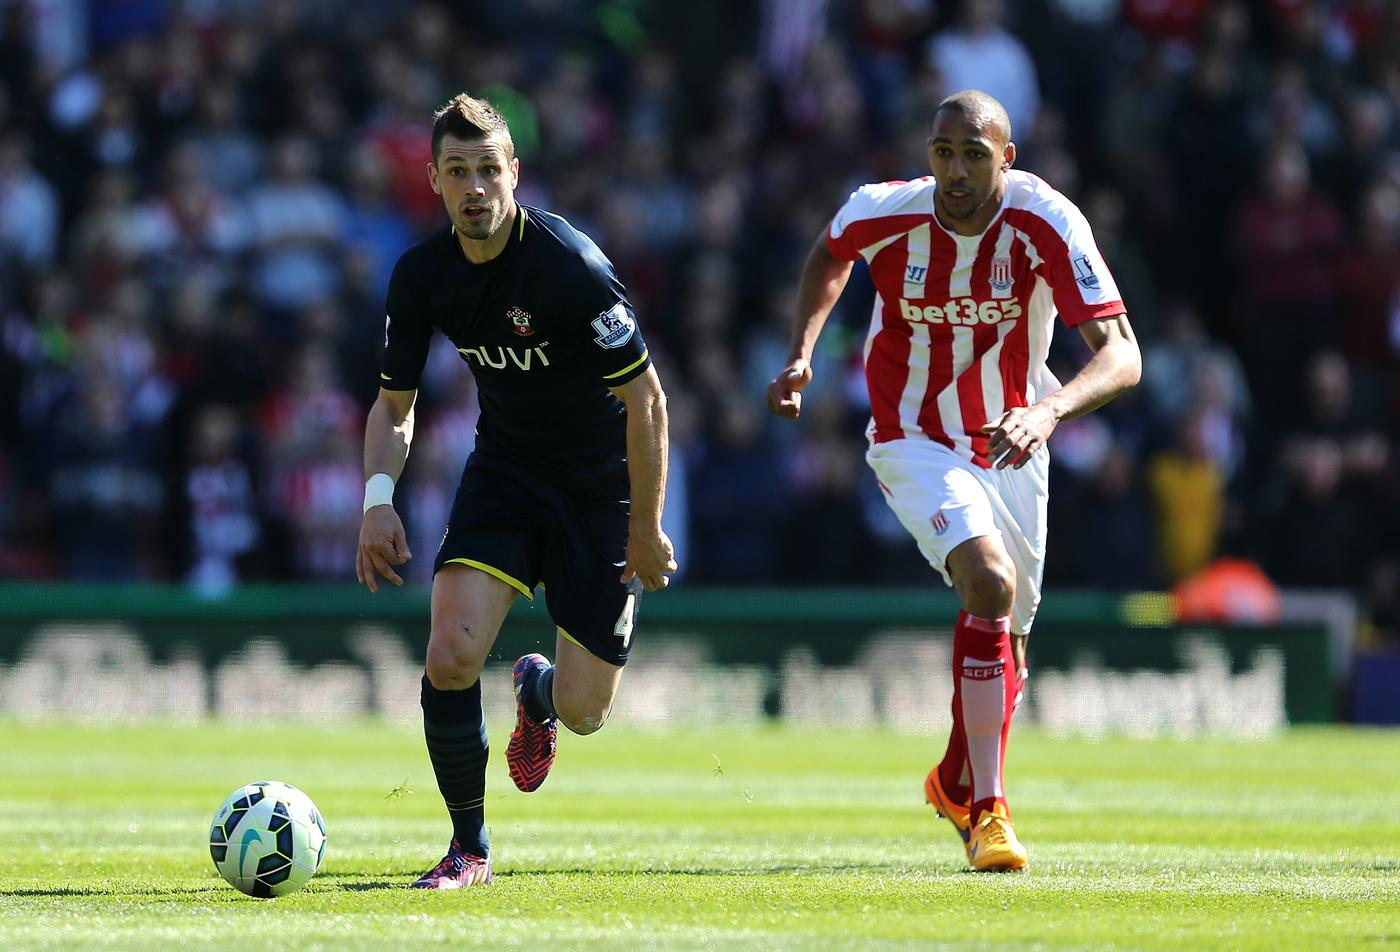 Arsenal 'cool interest' in transfer for Southampton's Morgan Schneiderlin following impressive form of Francis Coquelin